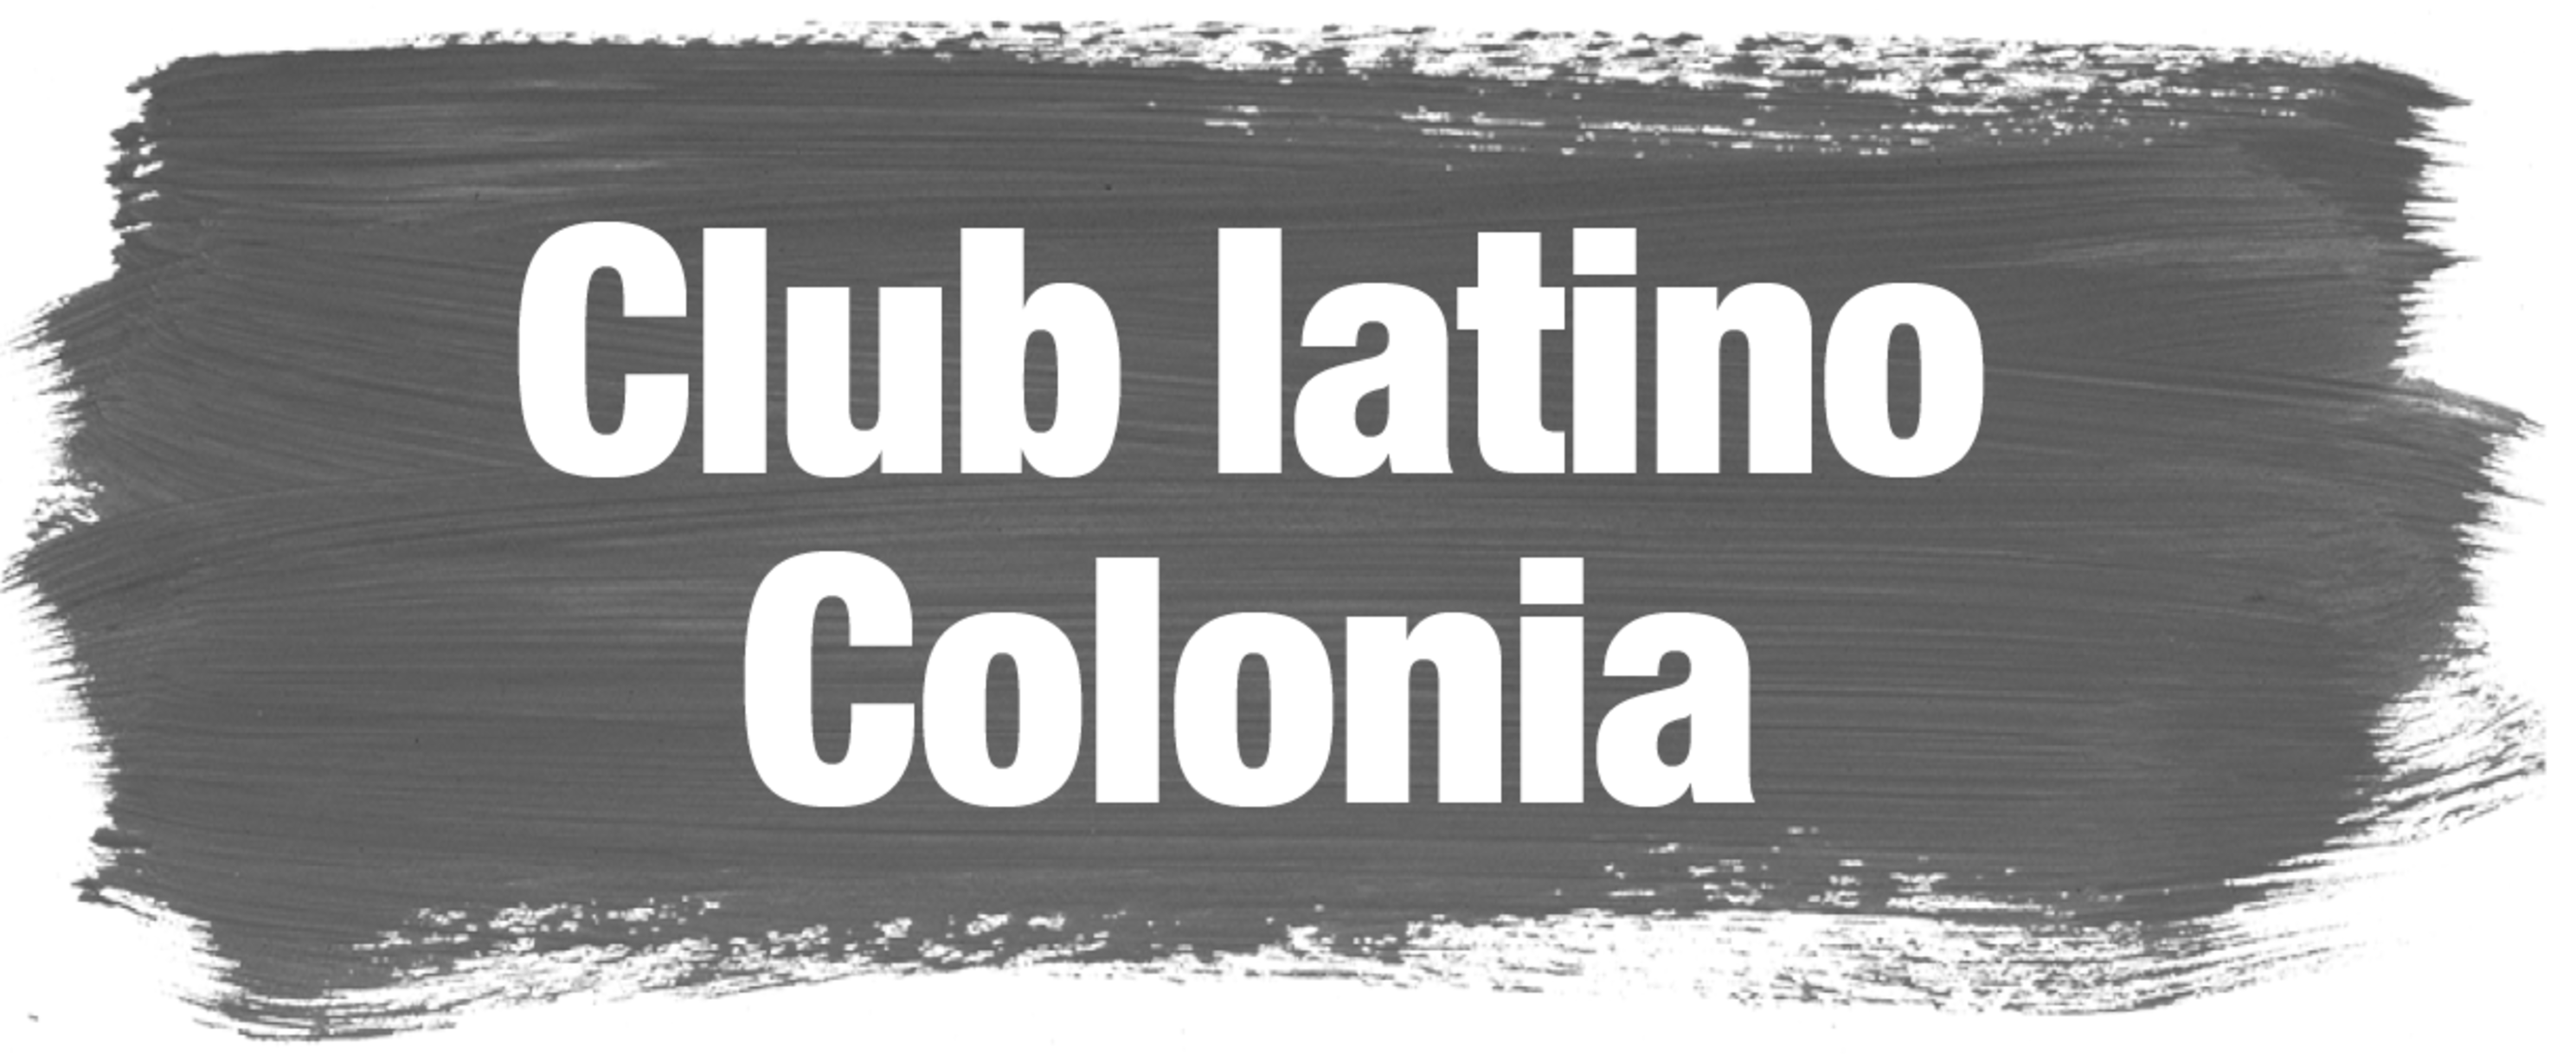 Kulturverein Club latino Colonia